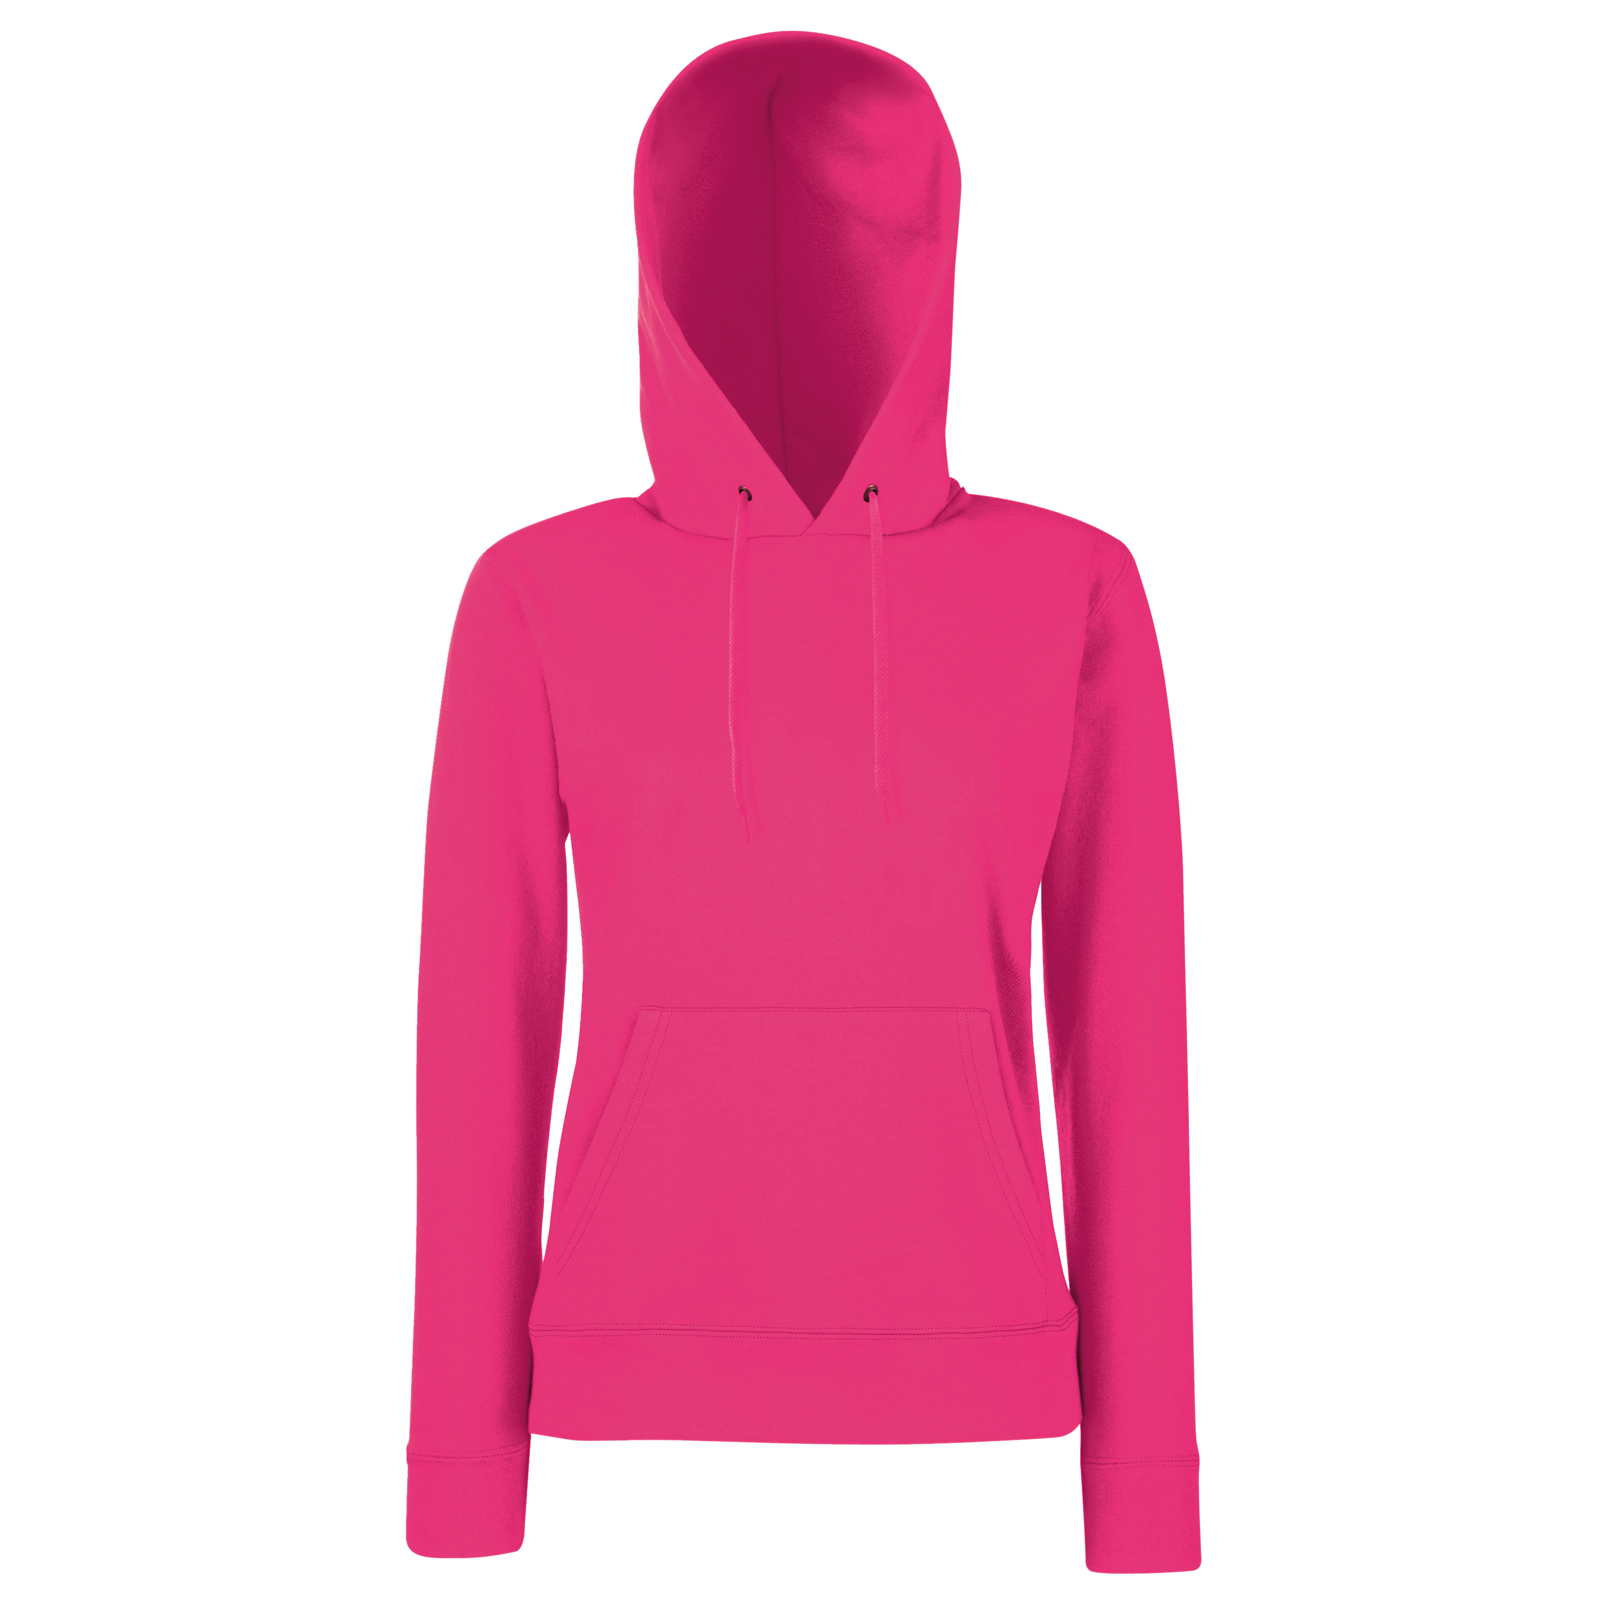 Fruit-of-the-Loom-Women-039-s-Hoody-Classic-pull-over-Lady-fit-Hooded-Sweatshirt